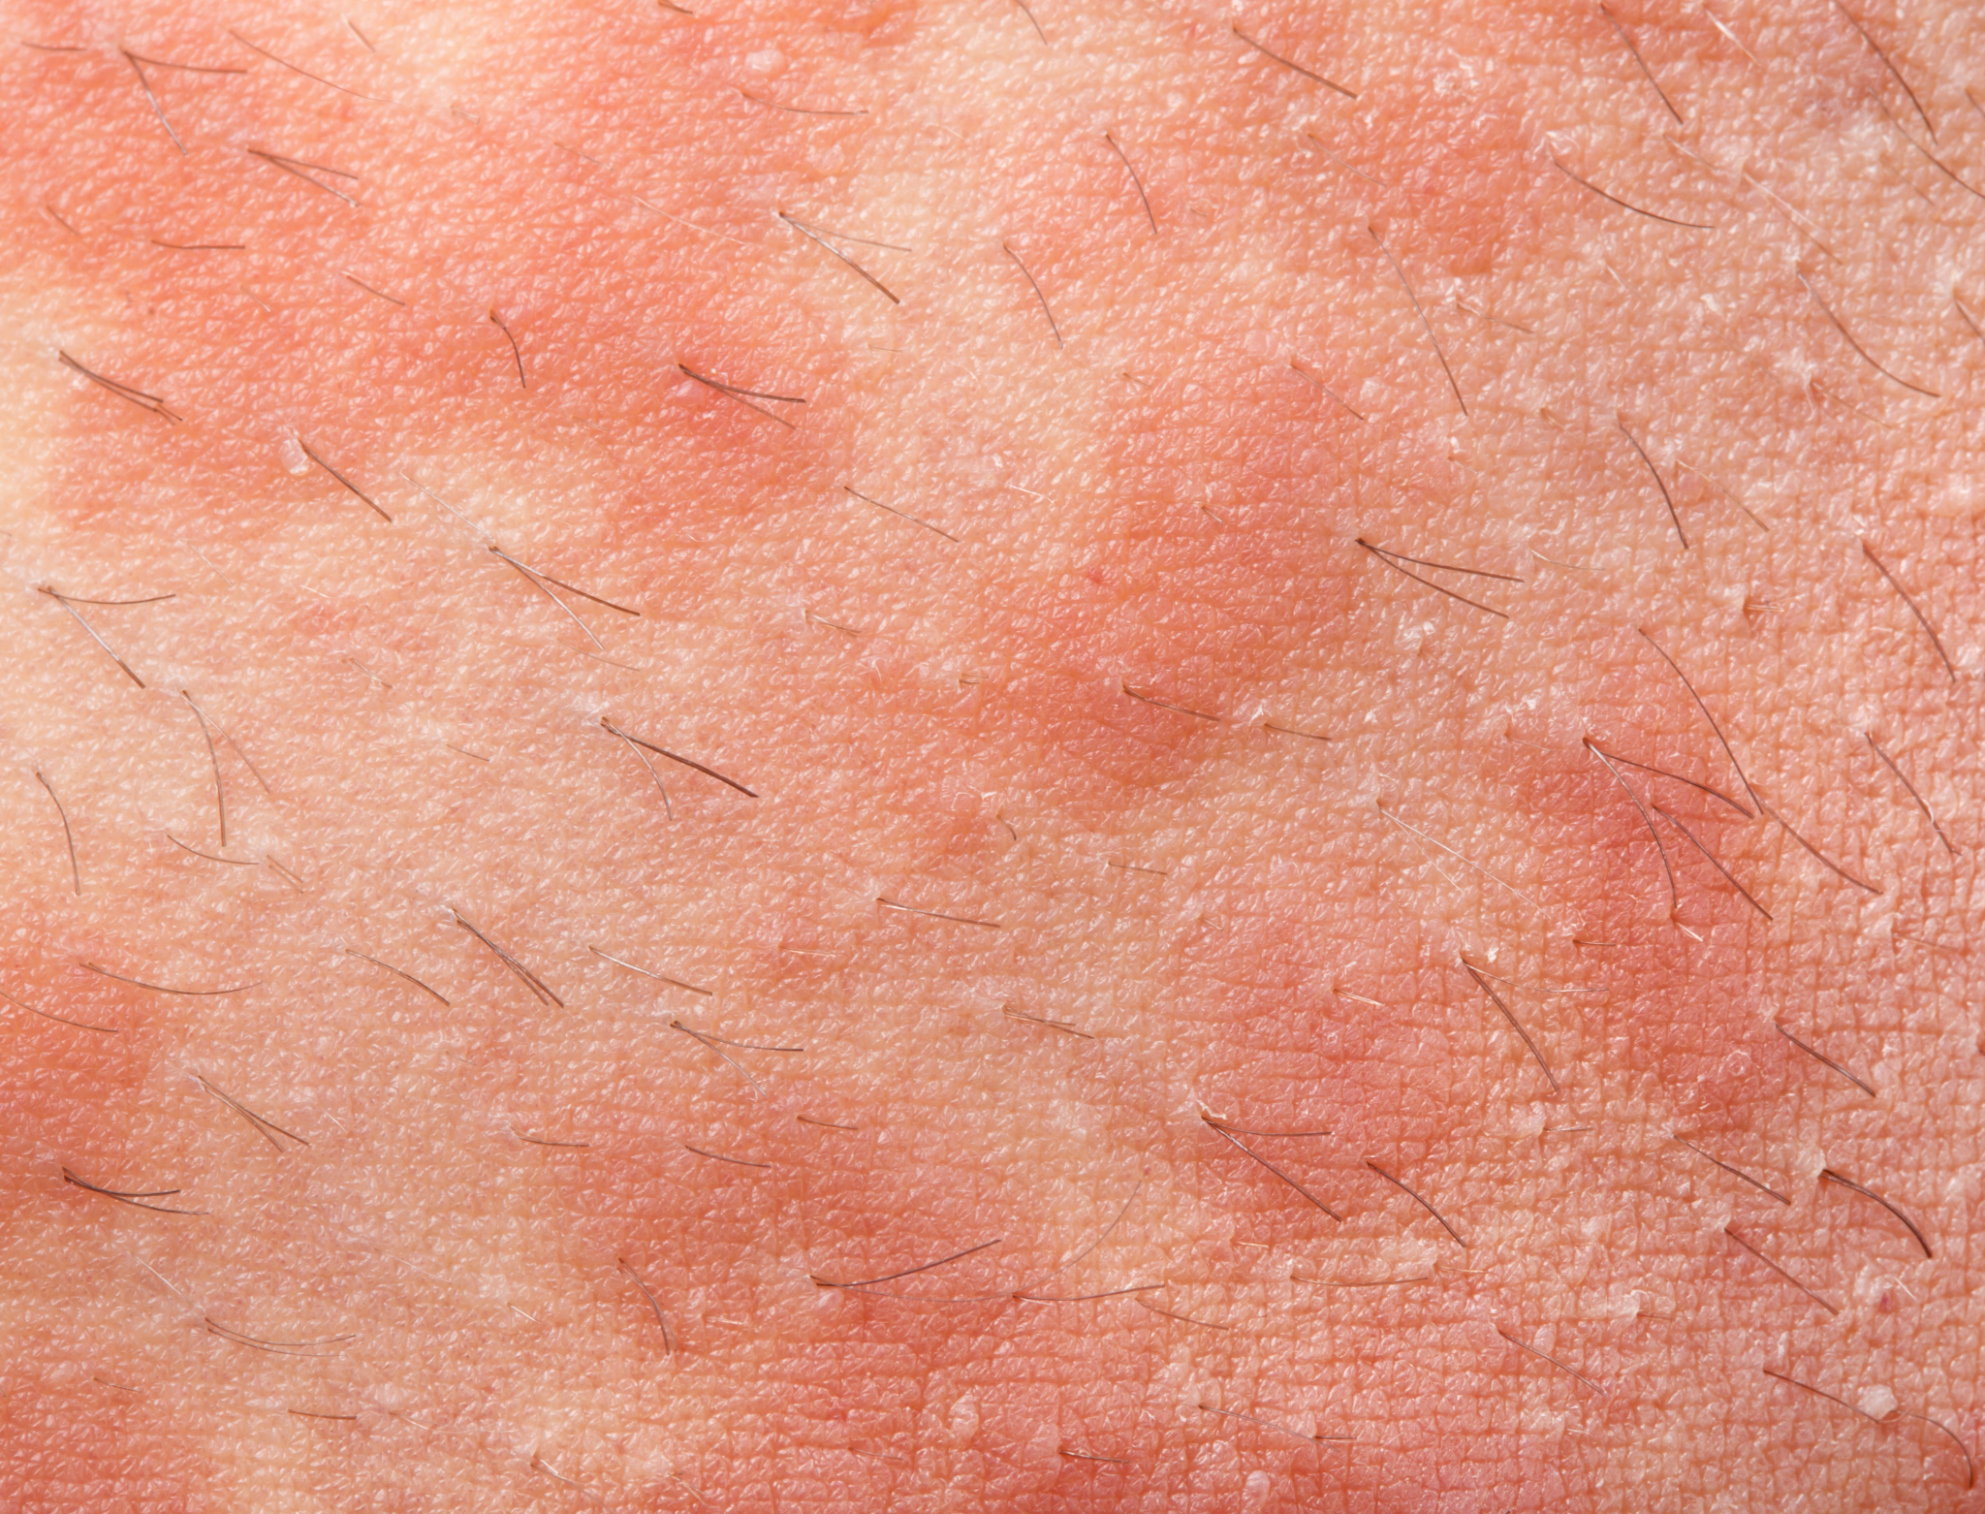 How to Cure Eczema in Three Days